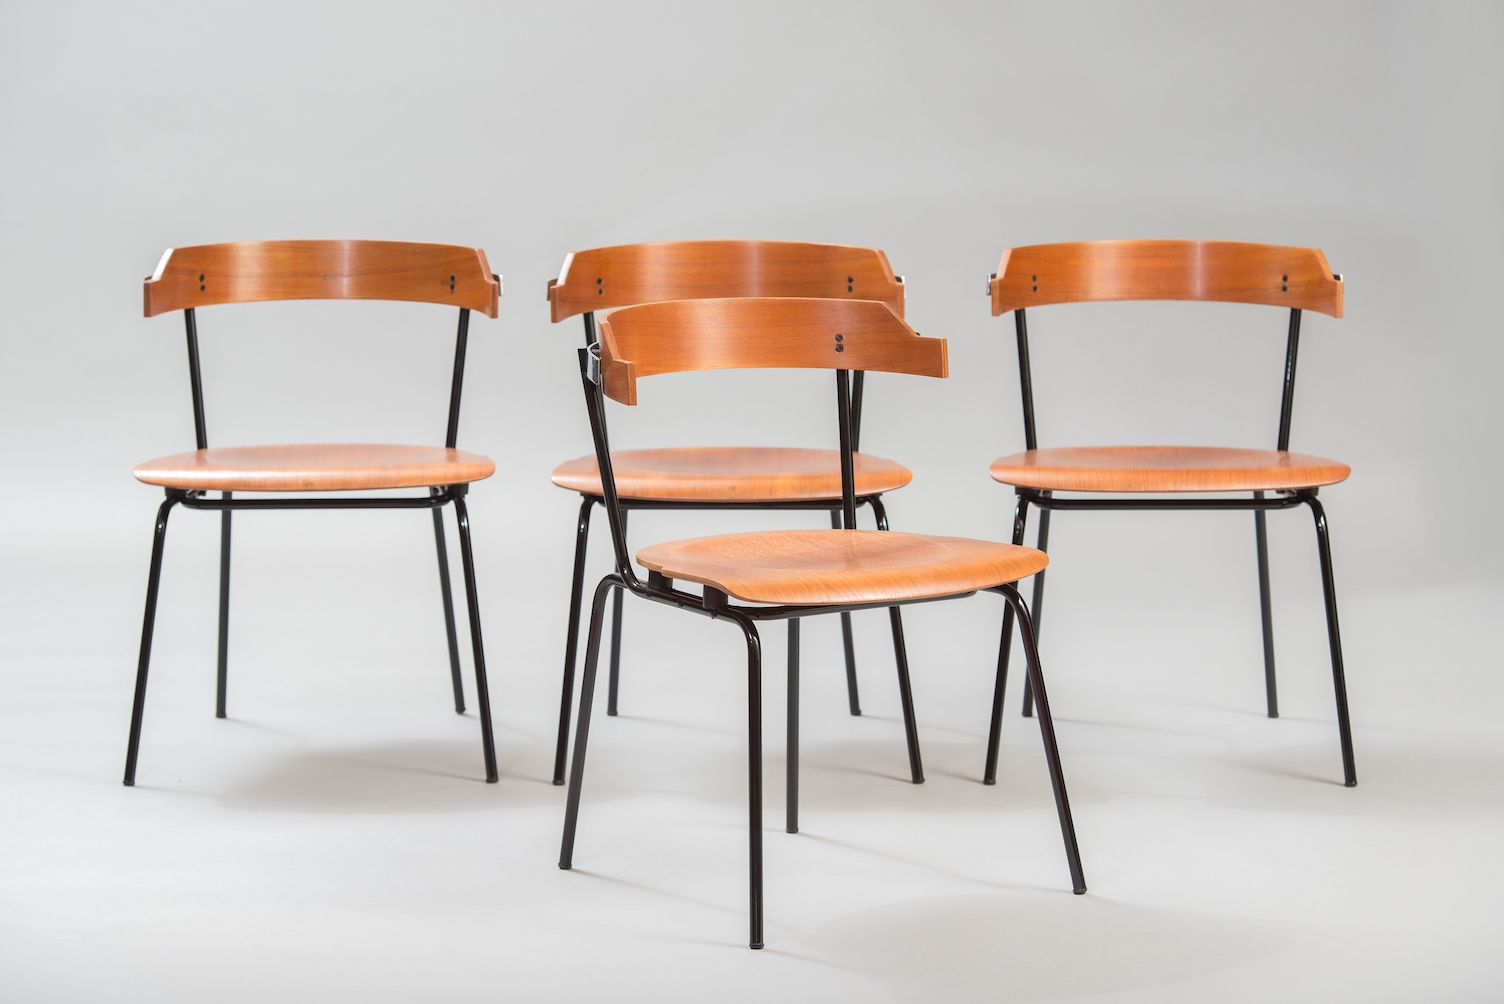 Vintage italian dining chairs set of 4 for sale at pamono for Italian dining furniture